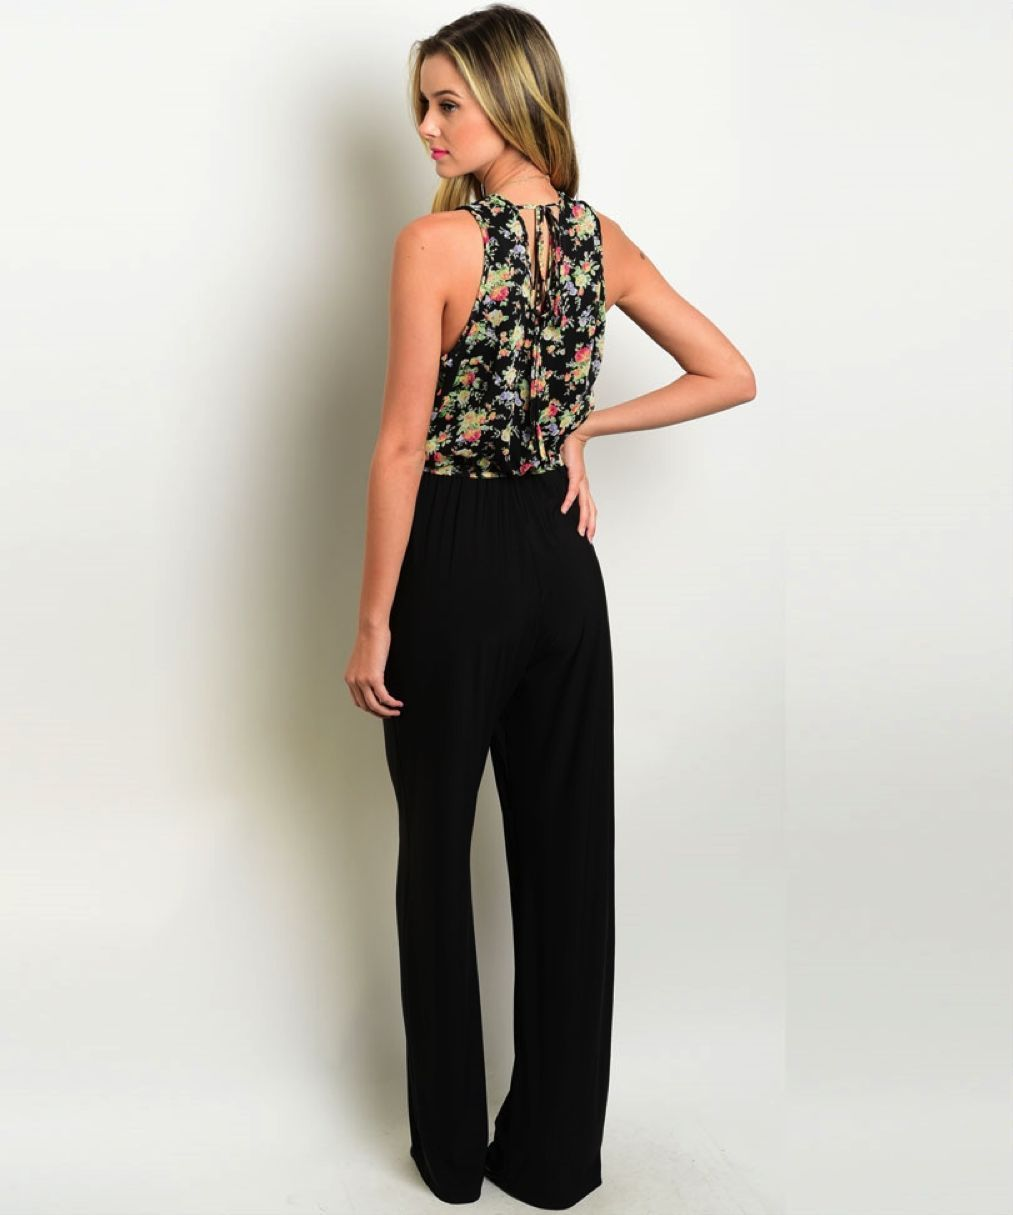 Image 1 of Sexy Black Pants, Floral Top Jrs Party Jumpsuit Romper, Polyester S, M, L - Blac